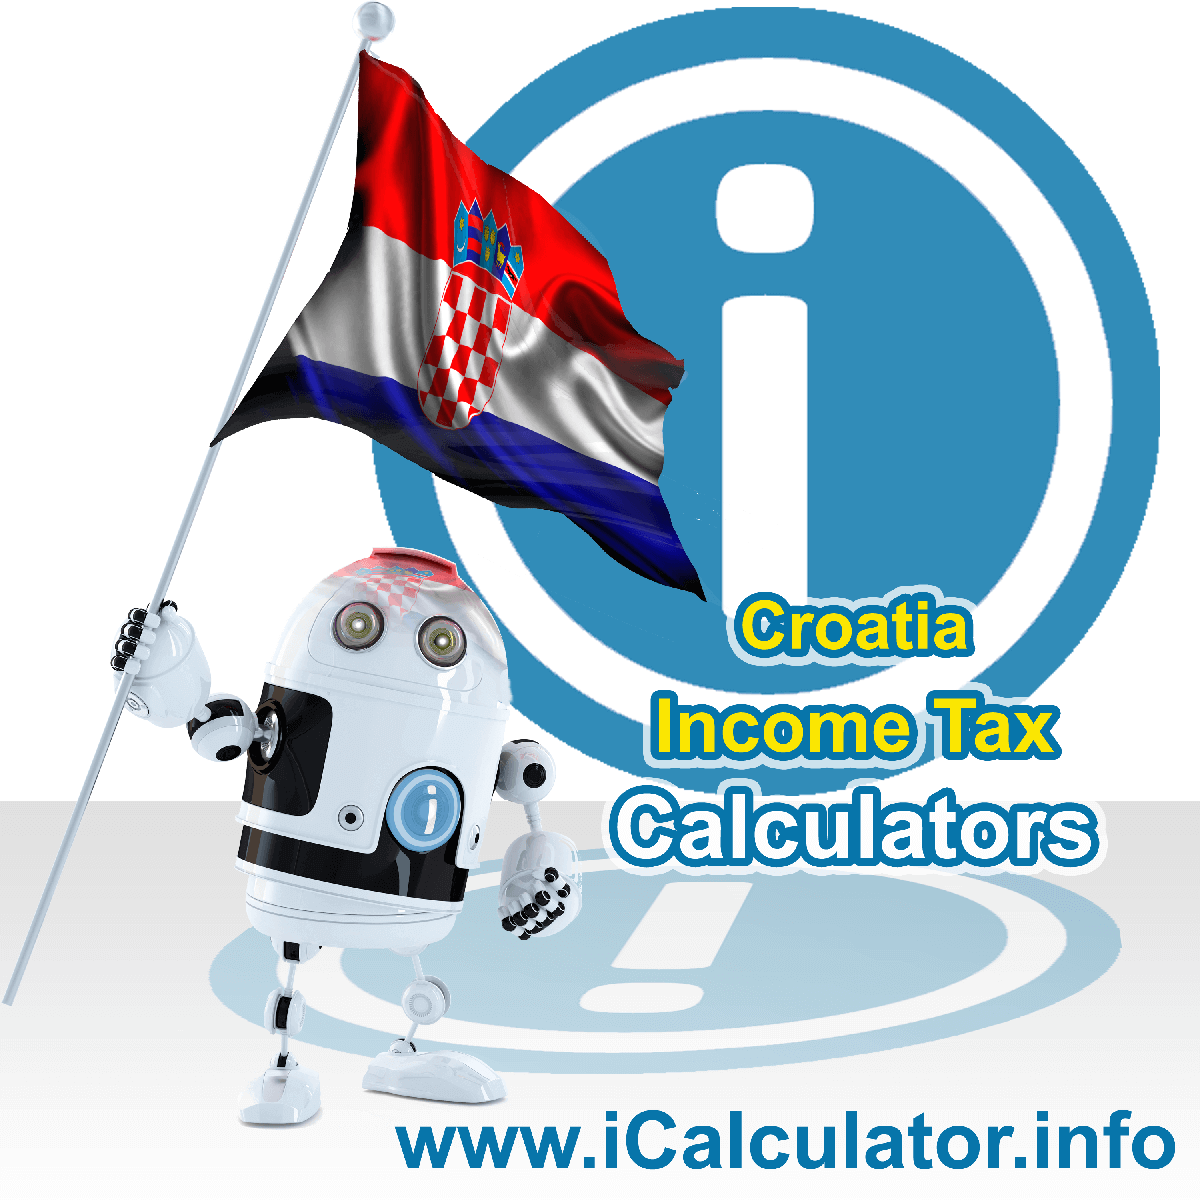 Croatia Income Tax Calculator. This image shows a new employer in Croatia calculating the annual payroll costs based on multiple payroll payments in one year in Croatia using the Croatia income tax calculator to understand their payroll costs in Croatia in 2021